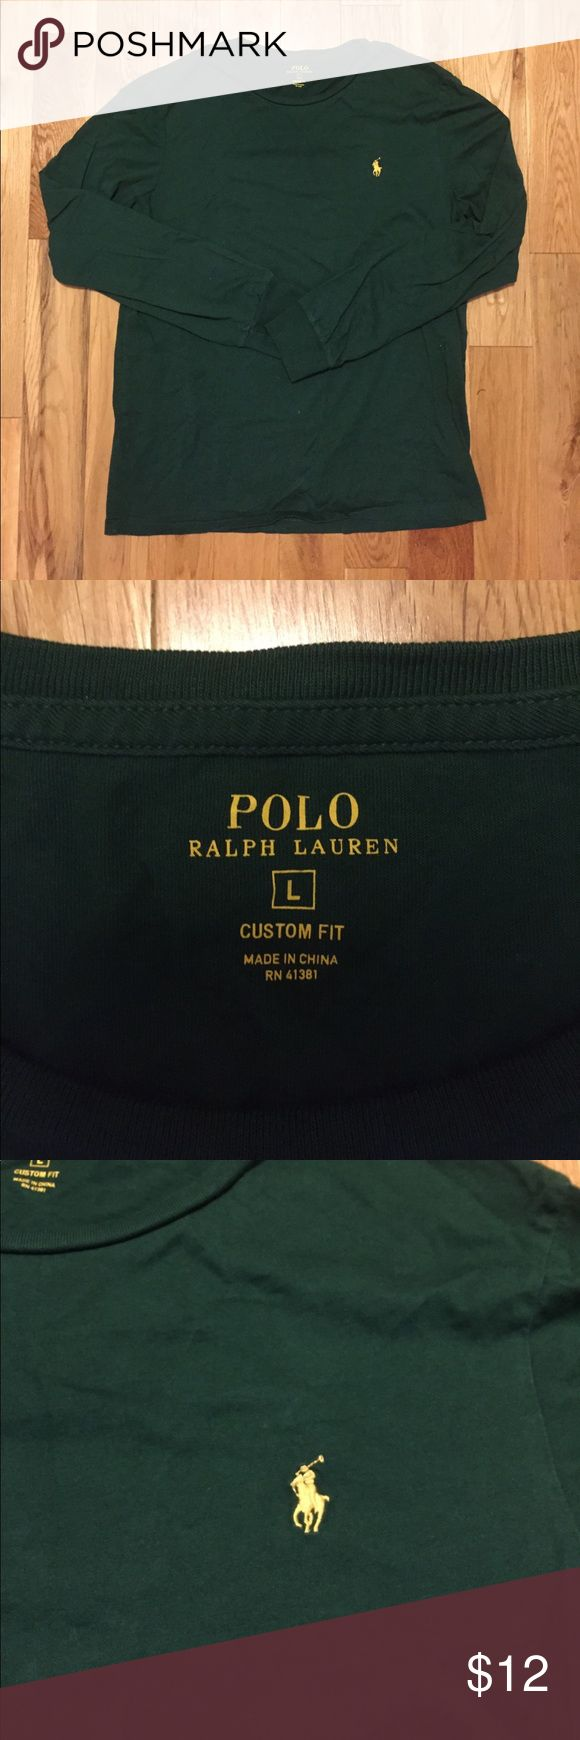 Men's Polo Ralph Lauren Long Sleeve Tee Size L Custom fit men's long sleeve tshirt in green with a yellow pony player Polo by Ralph Lauren Shirts Tees - Long Sleeve